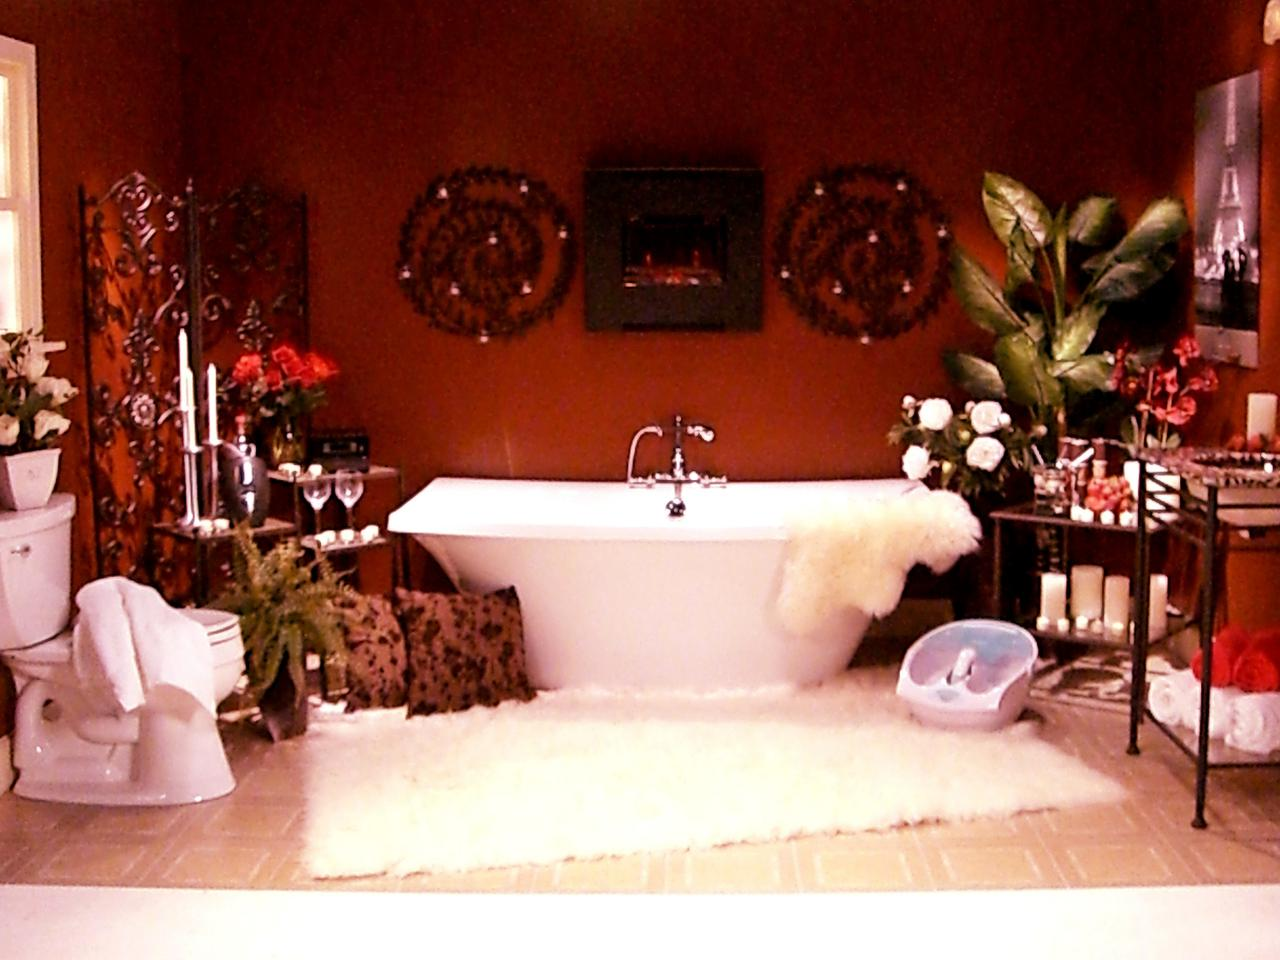 tips for creating the ultimate romantic bathroom | diy